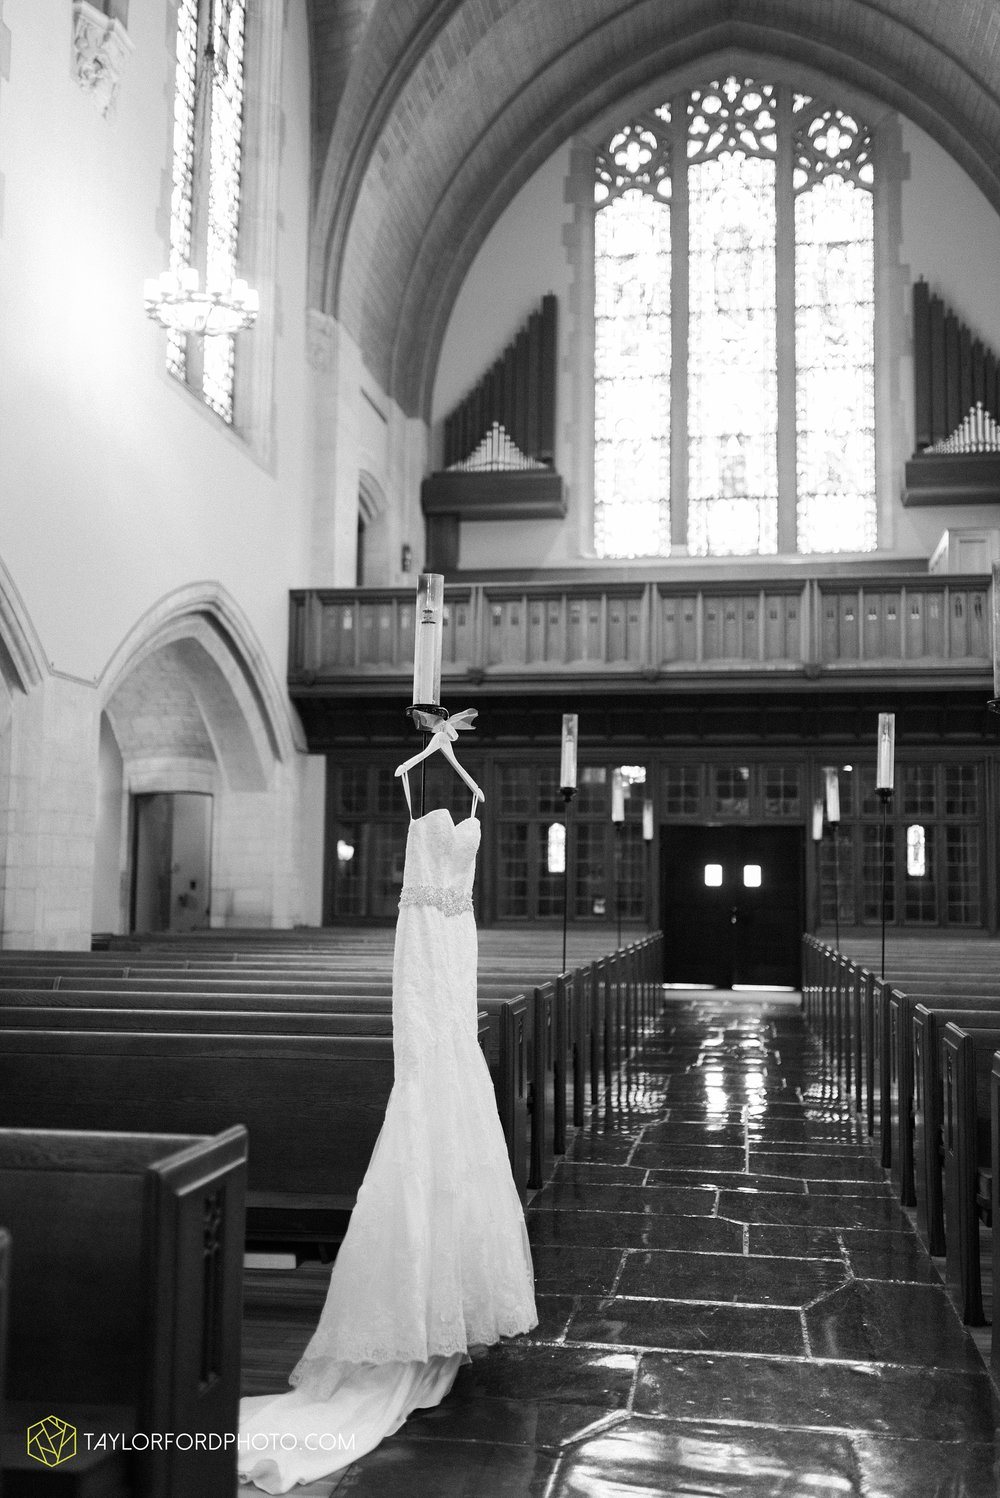 ford-wayne-indiana-trinity-lutheran-church-becca-connor-bonnell-taylor-ford-wedding-photography_0013.jpg